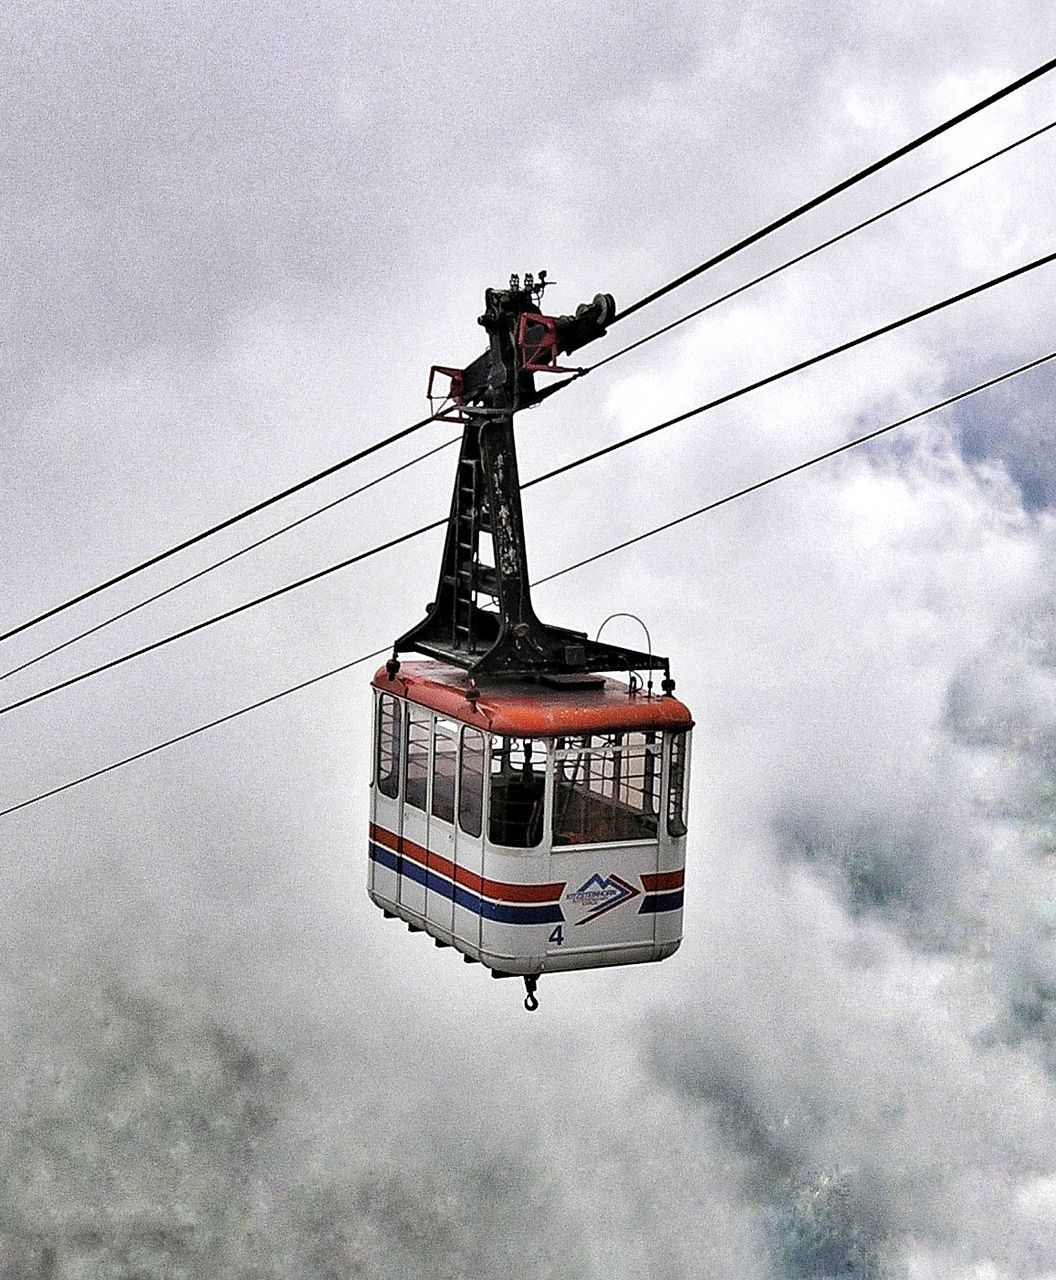 cloud - sky, sky, transportation, cable, day, low angle view, overhead cable car, outdoors, hanging, real people, nature, ski lift